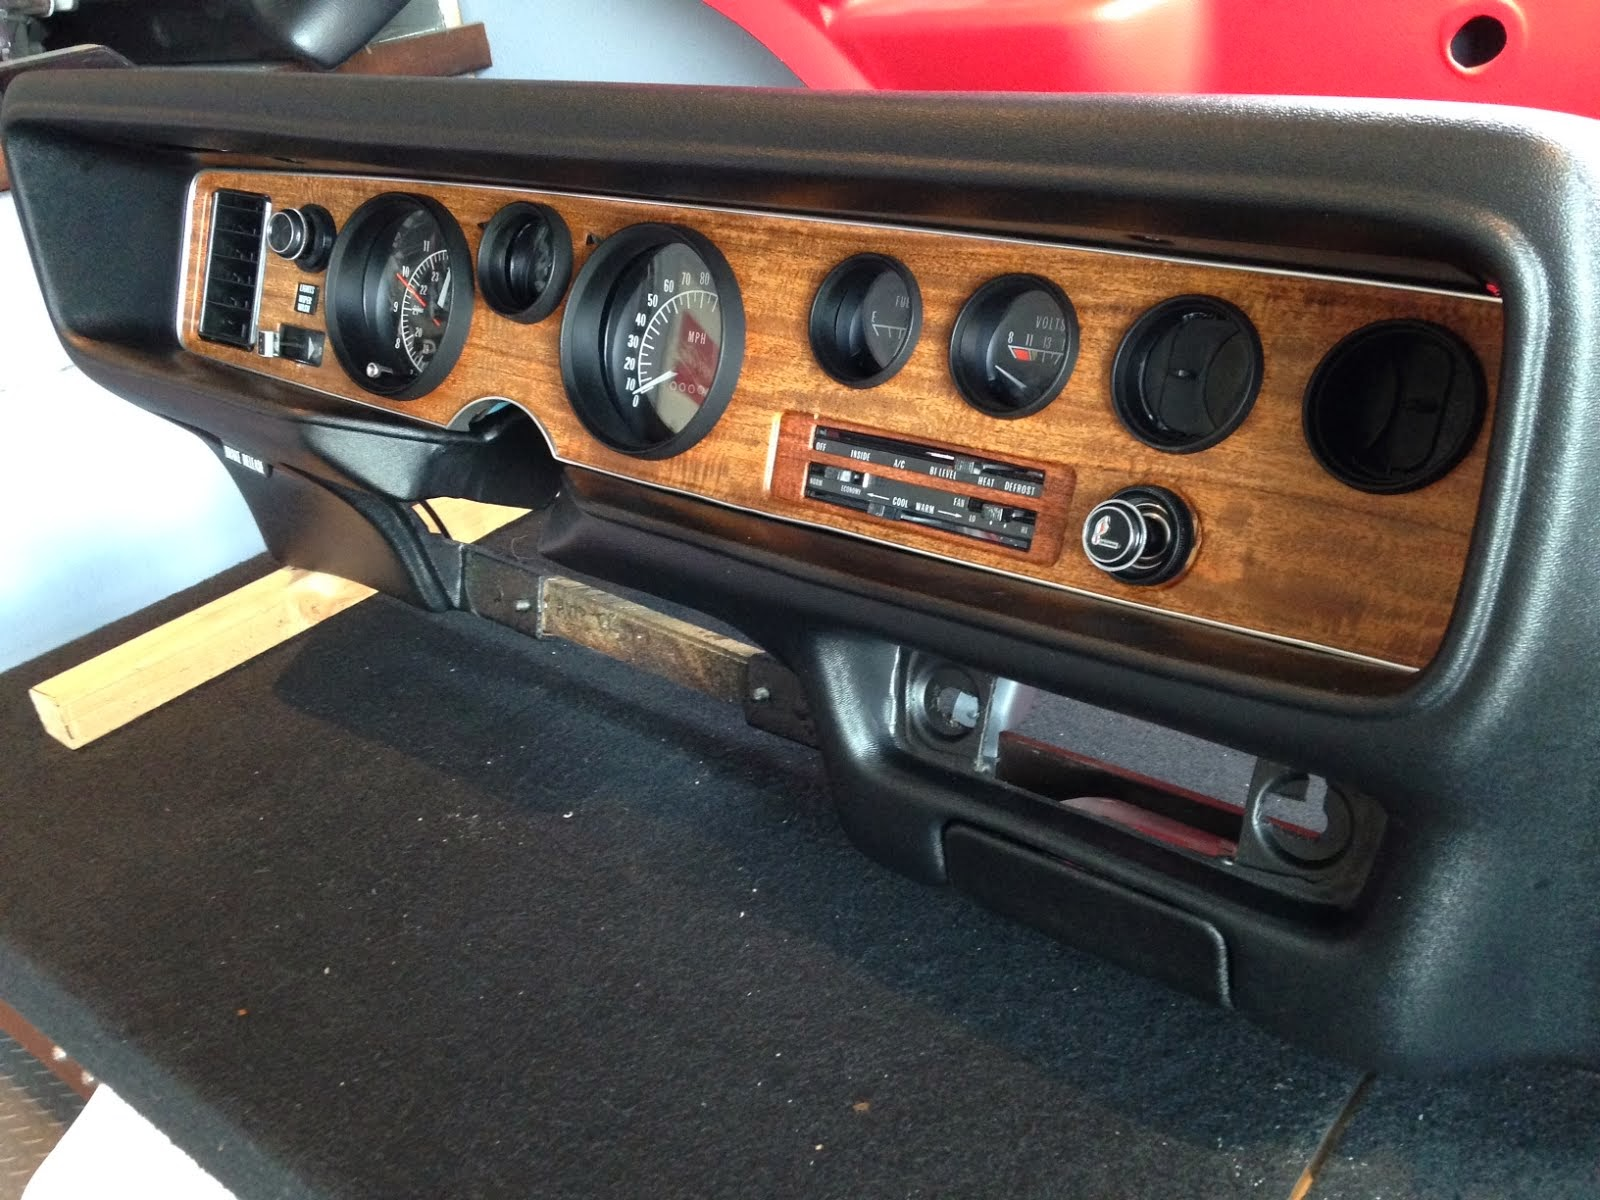 1980 trans am dash pictures to pin on pinterest